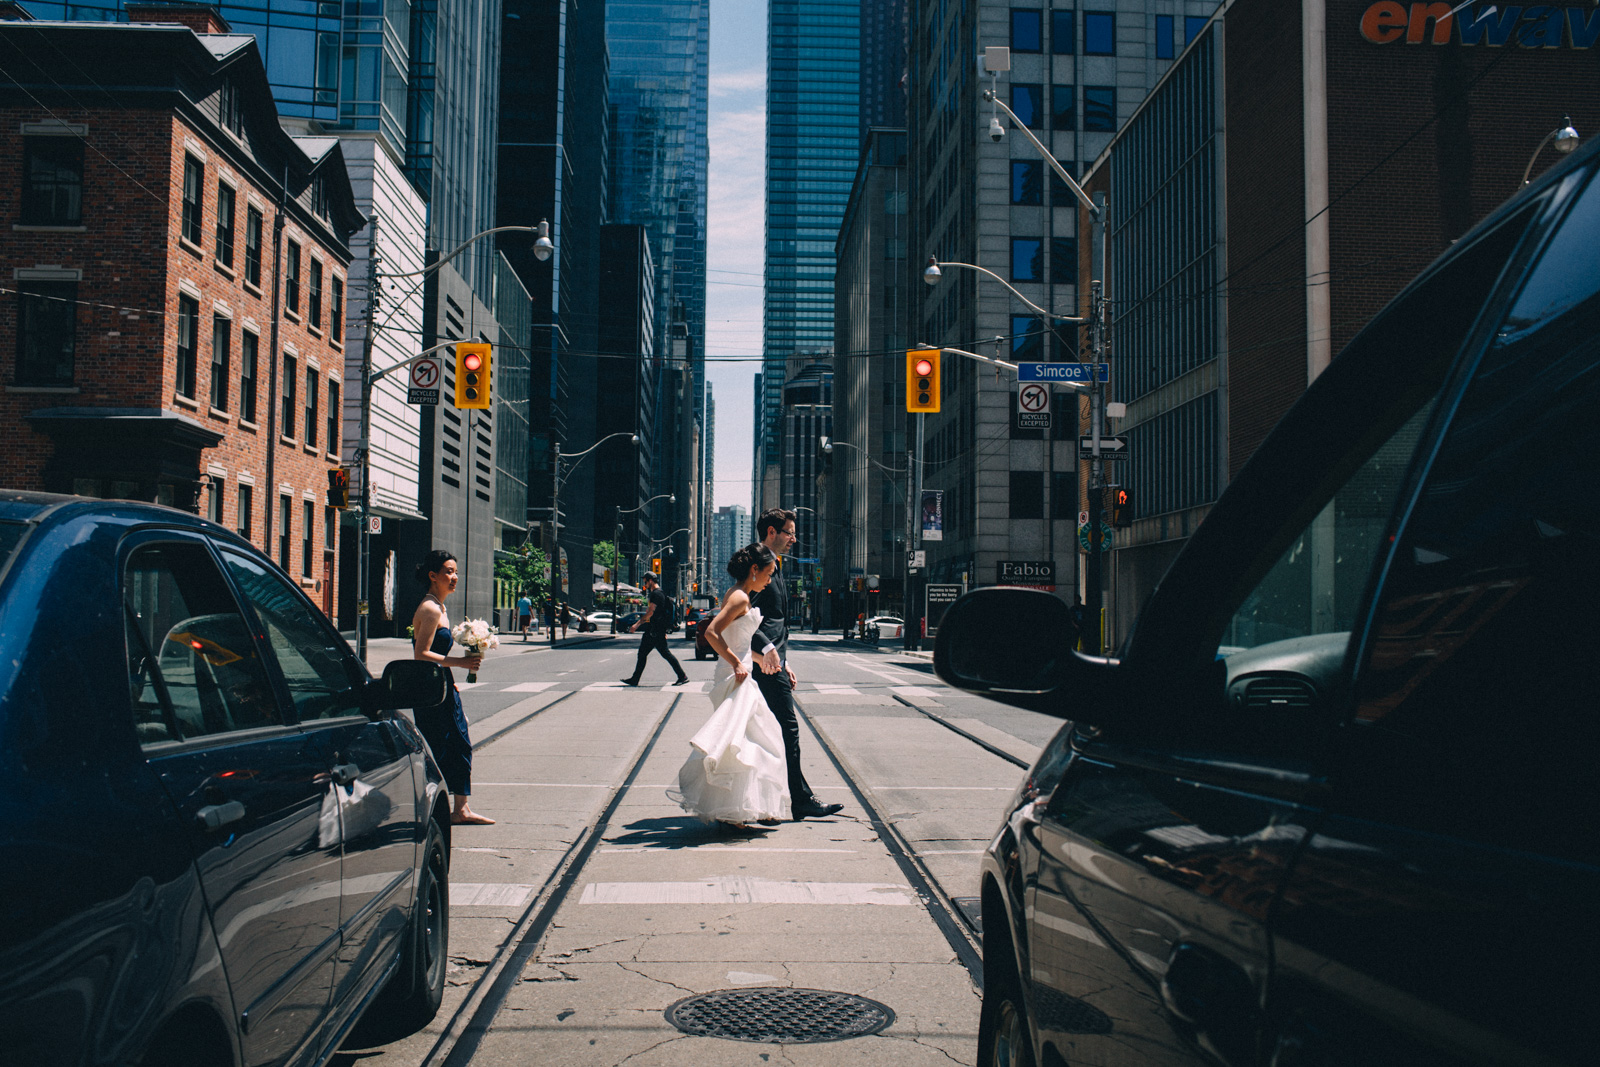 Canoe-Toronto-wedding-photography-JM-by-Sam-Wong-of-visual-cravings_16